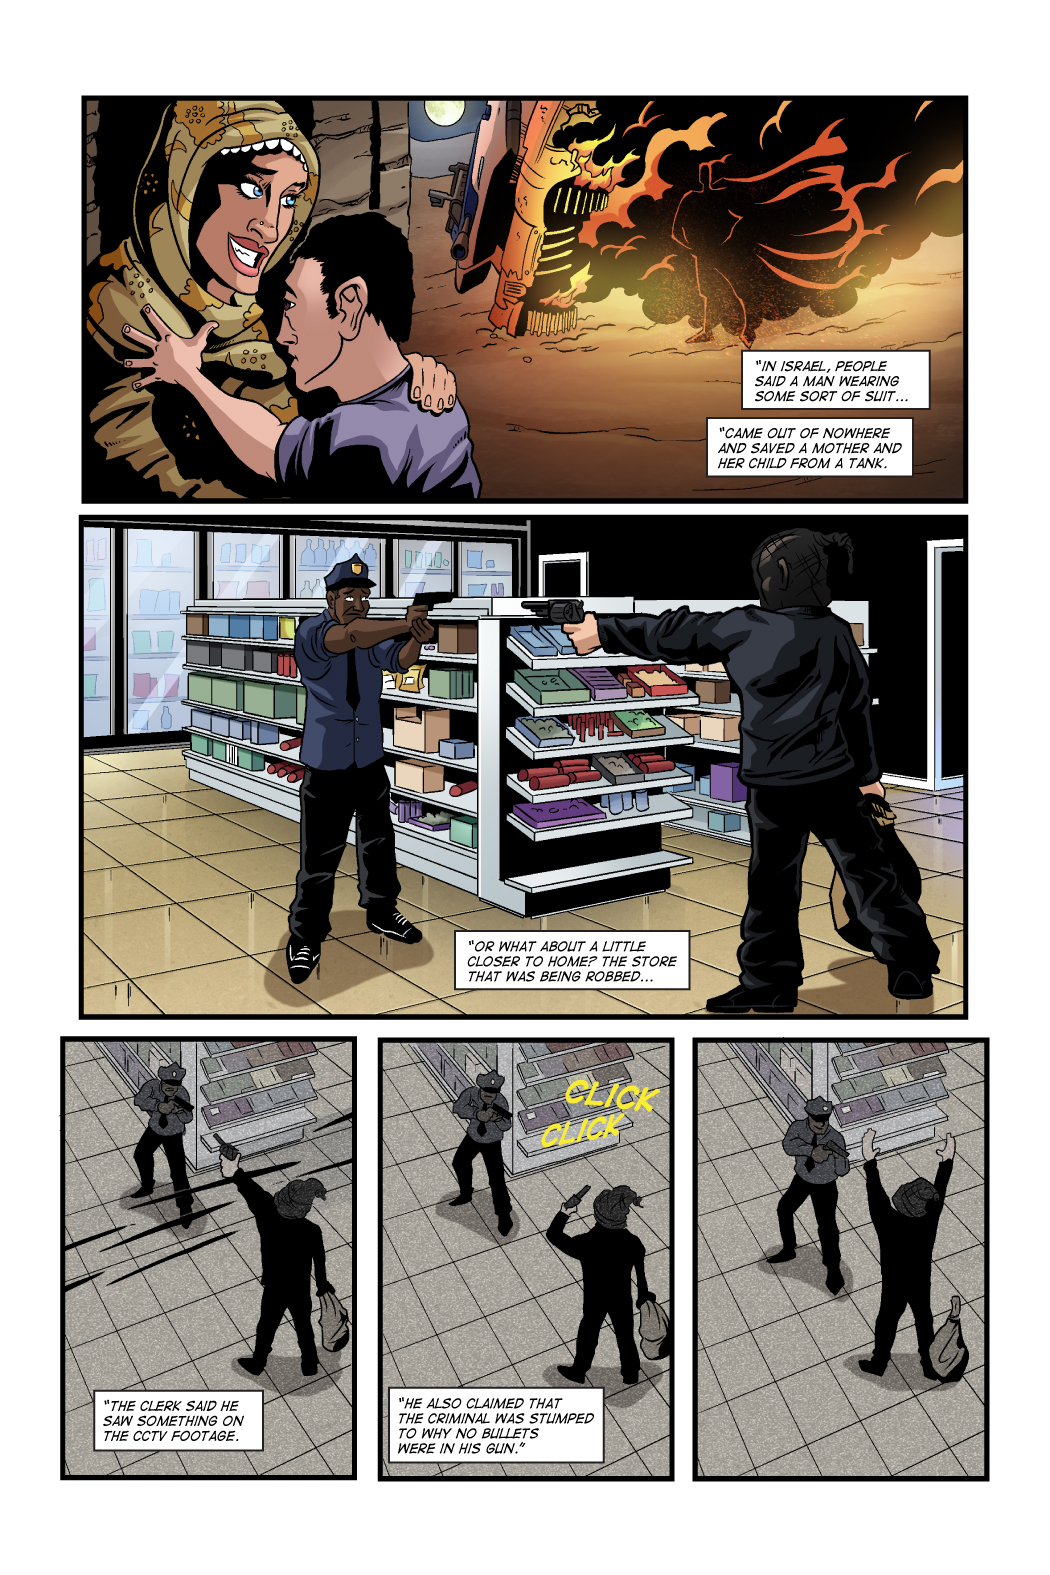 MIRACLE (Page 2)